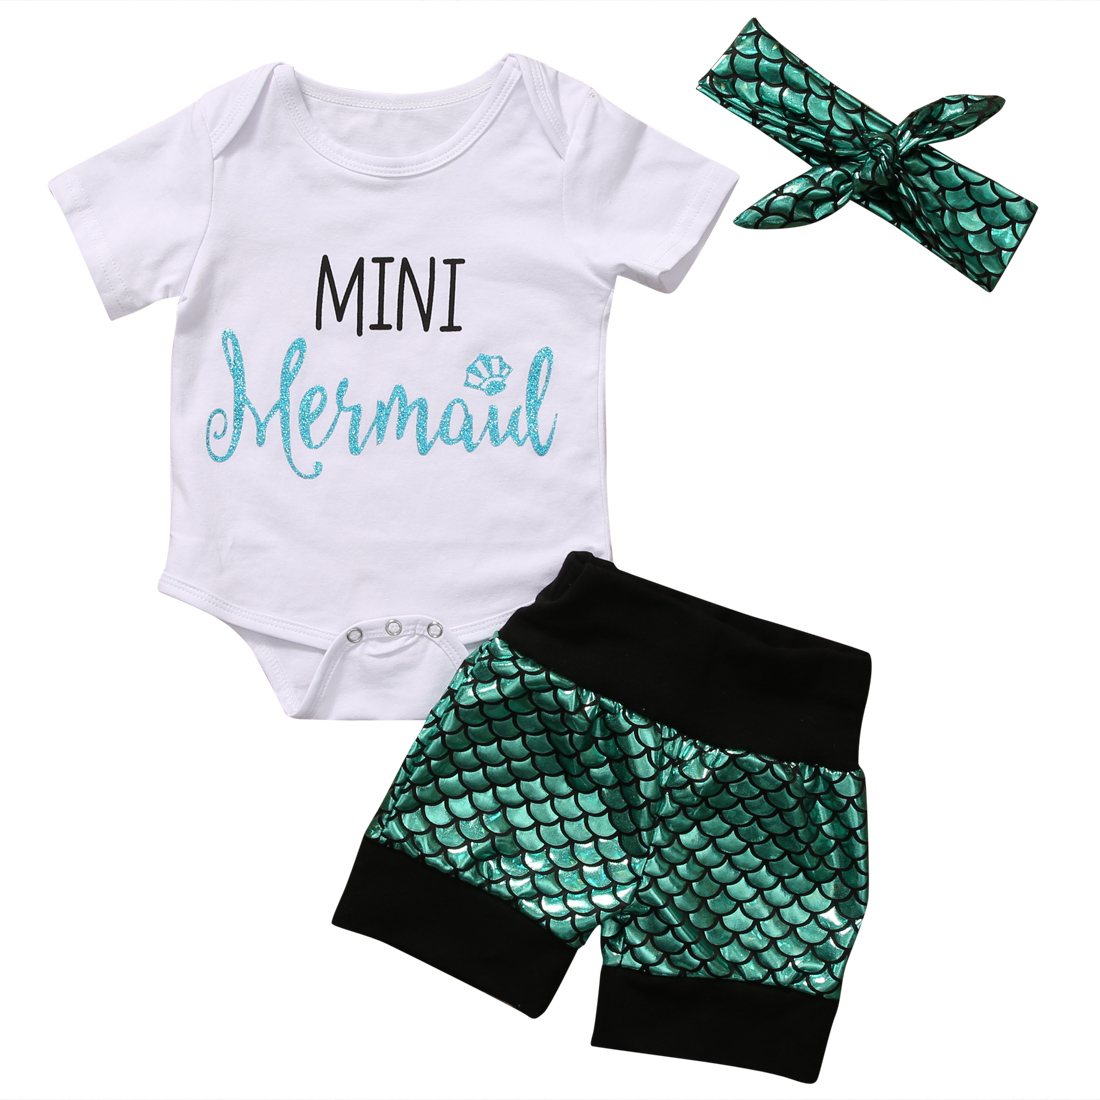 3PCS Mini Mermaid Newborn Baby Girl Clothes 2017 Summer Short Sleeve Cotton Romper Bodysuit+Sea-Maid Bottom Outfit Clothing Set baby boy clothes kids bodysuit infant coverall newborn romper short sleeve polo shirt cotton children costume outfit suit